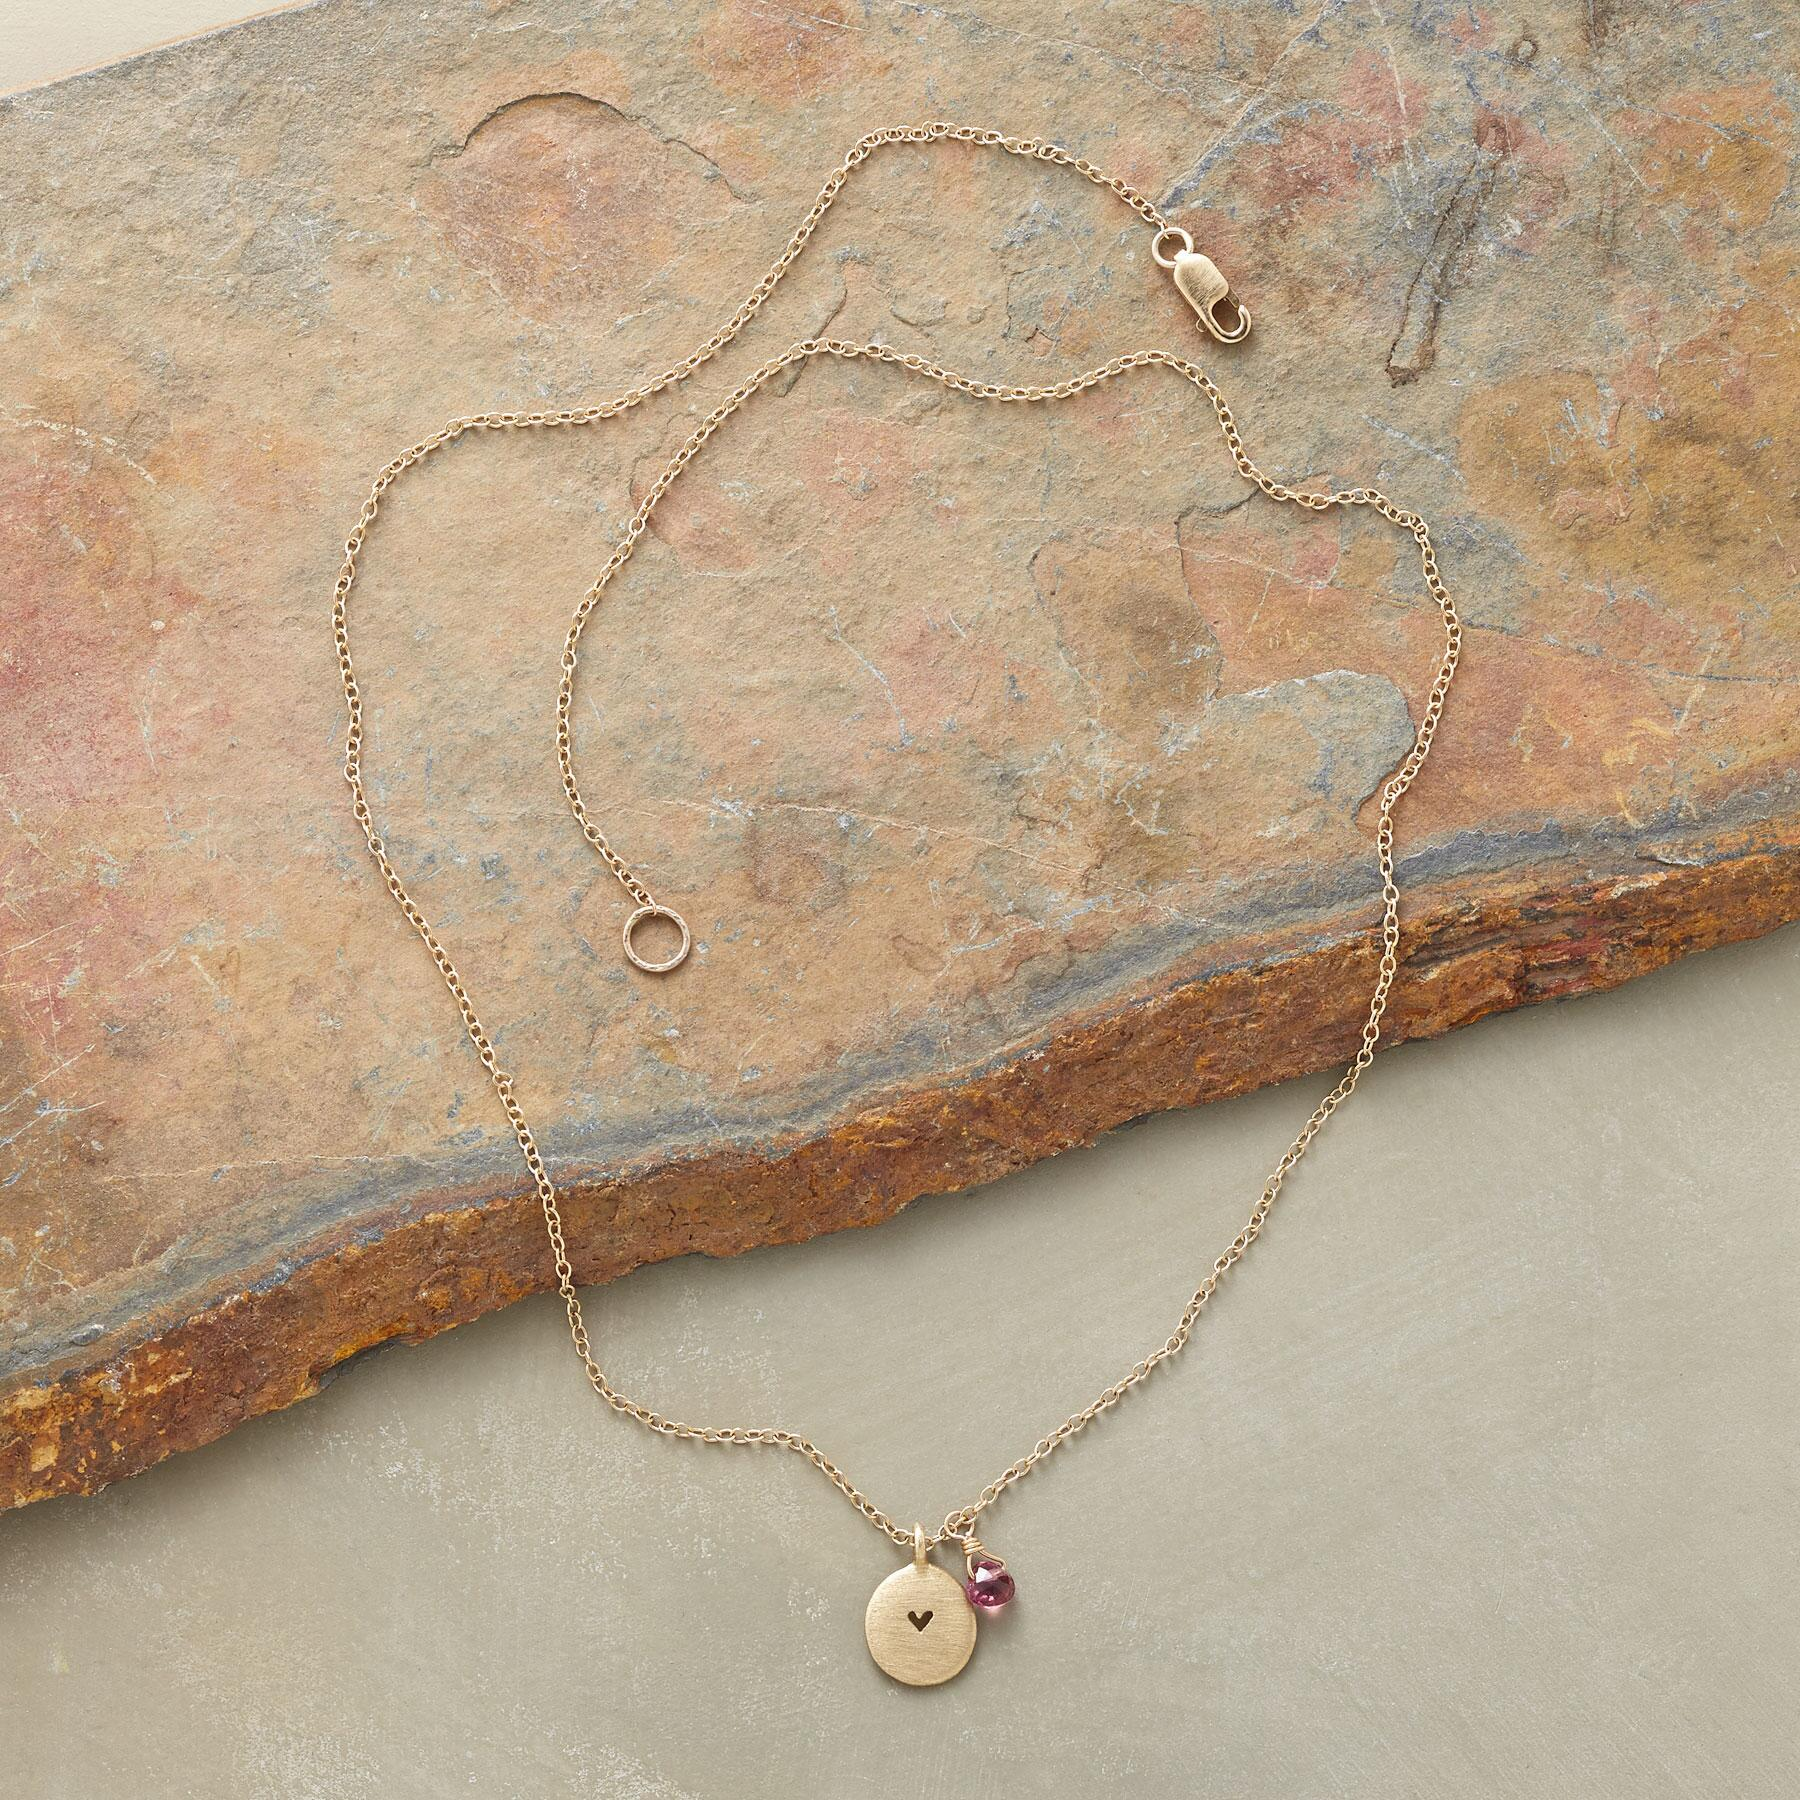 Openhearted Necklace: View 2